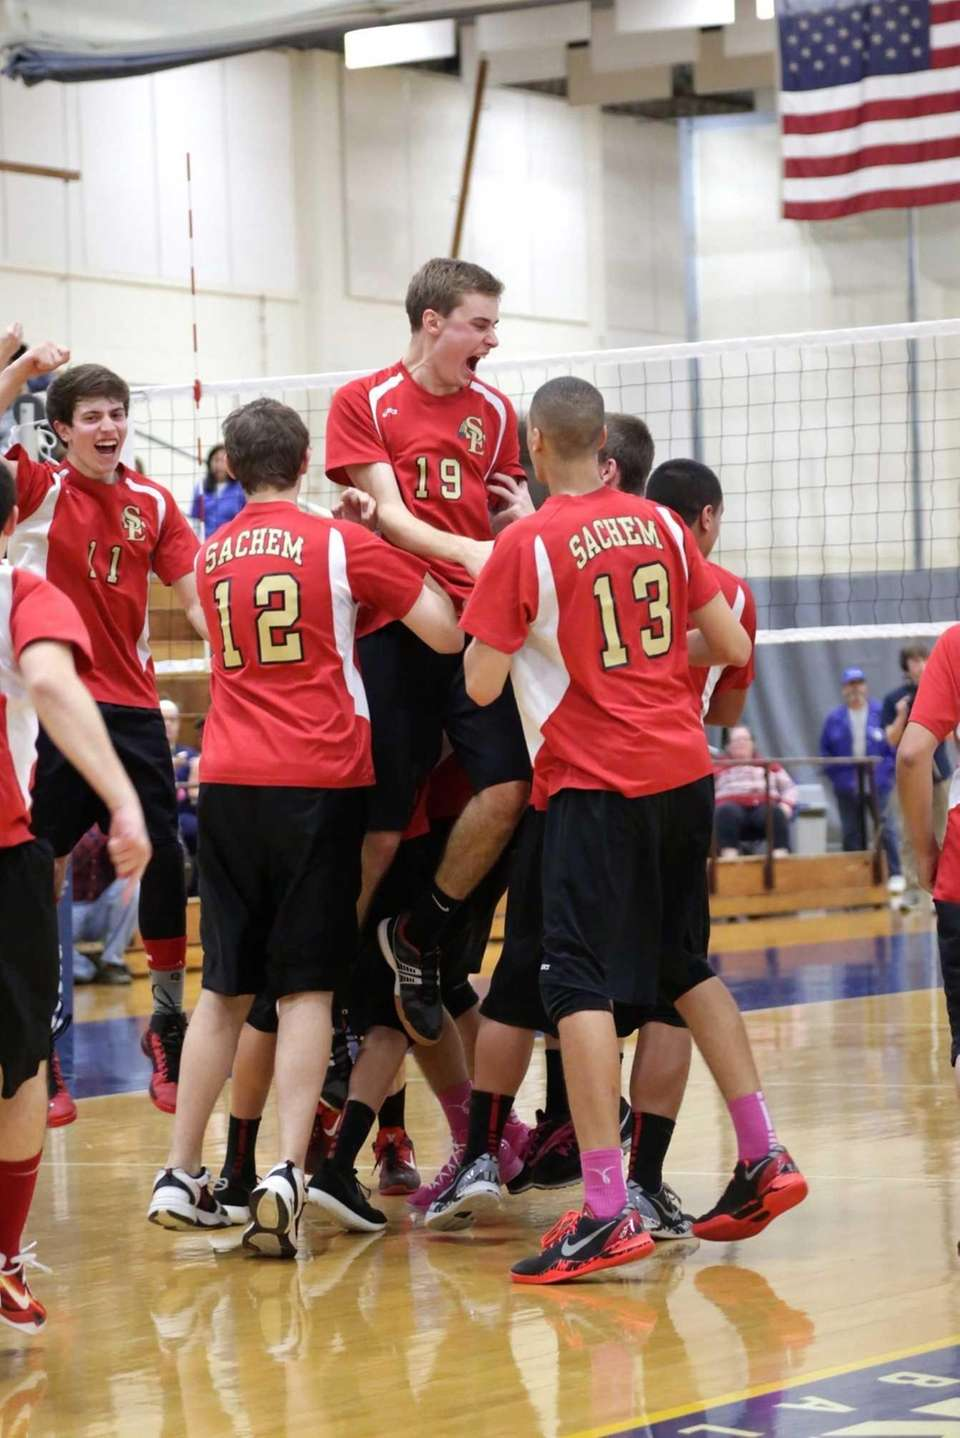 Tom Mitchell of Sachem East celebrates with teammates